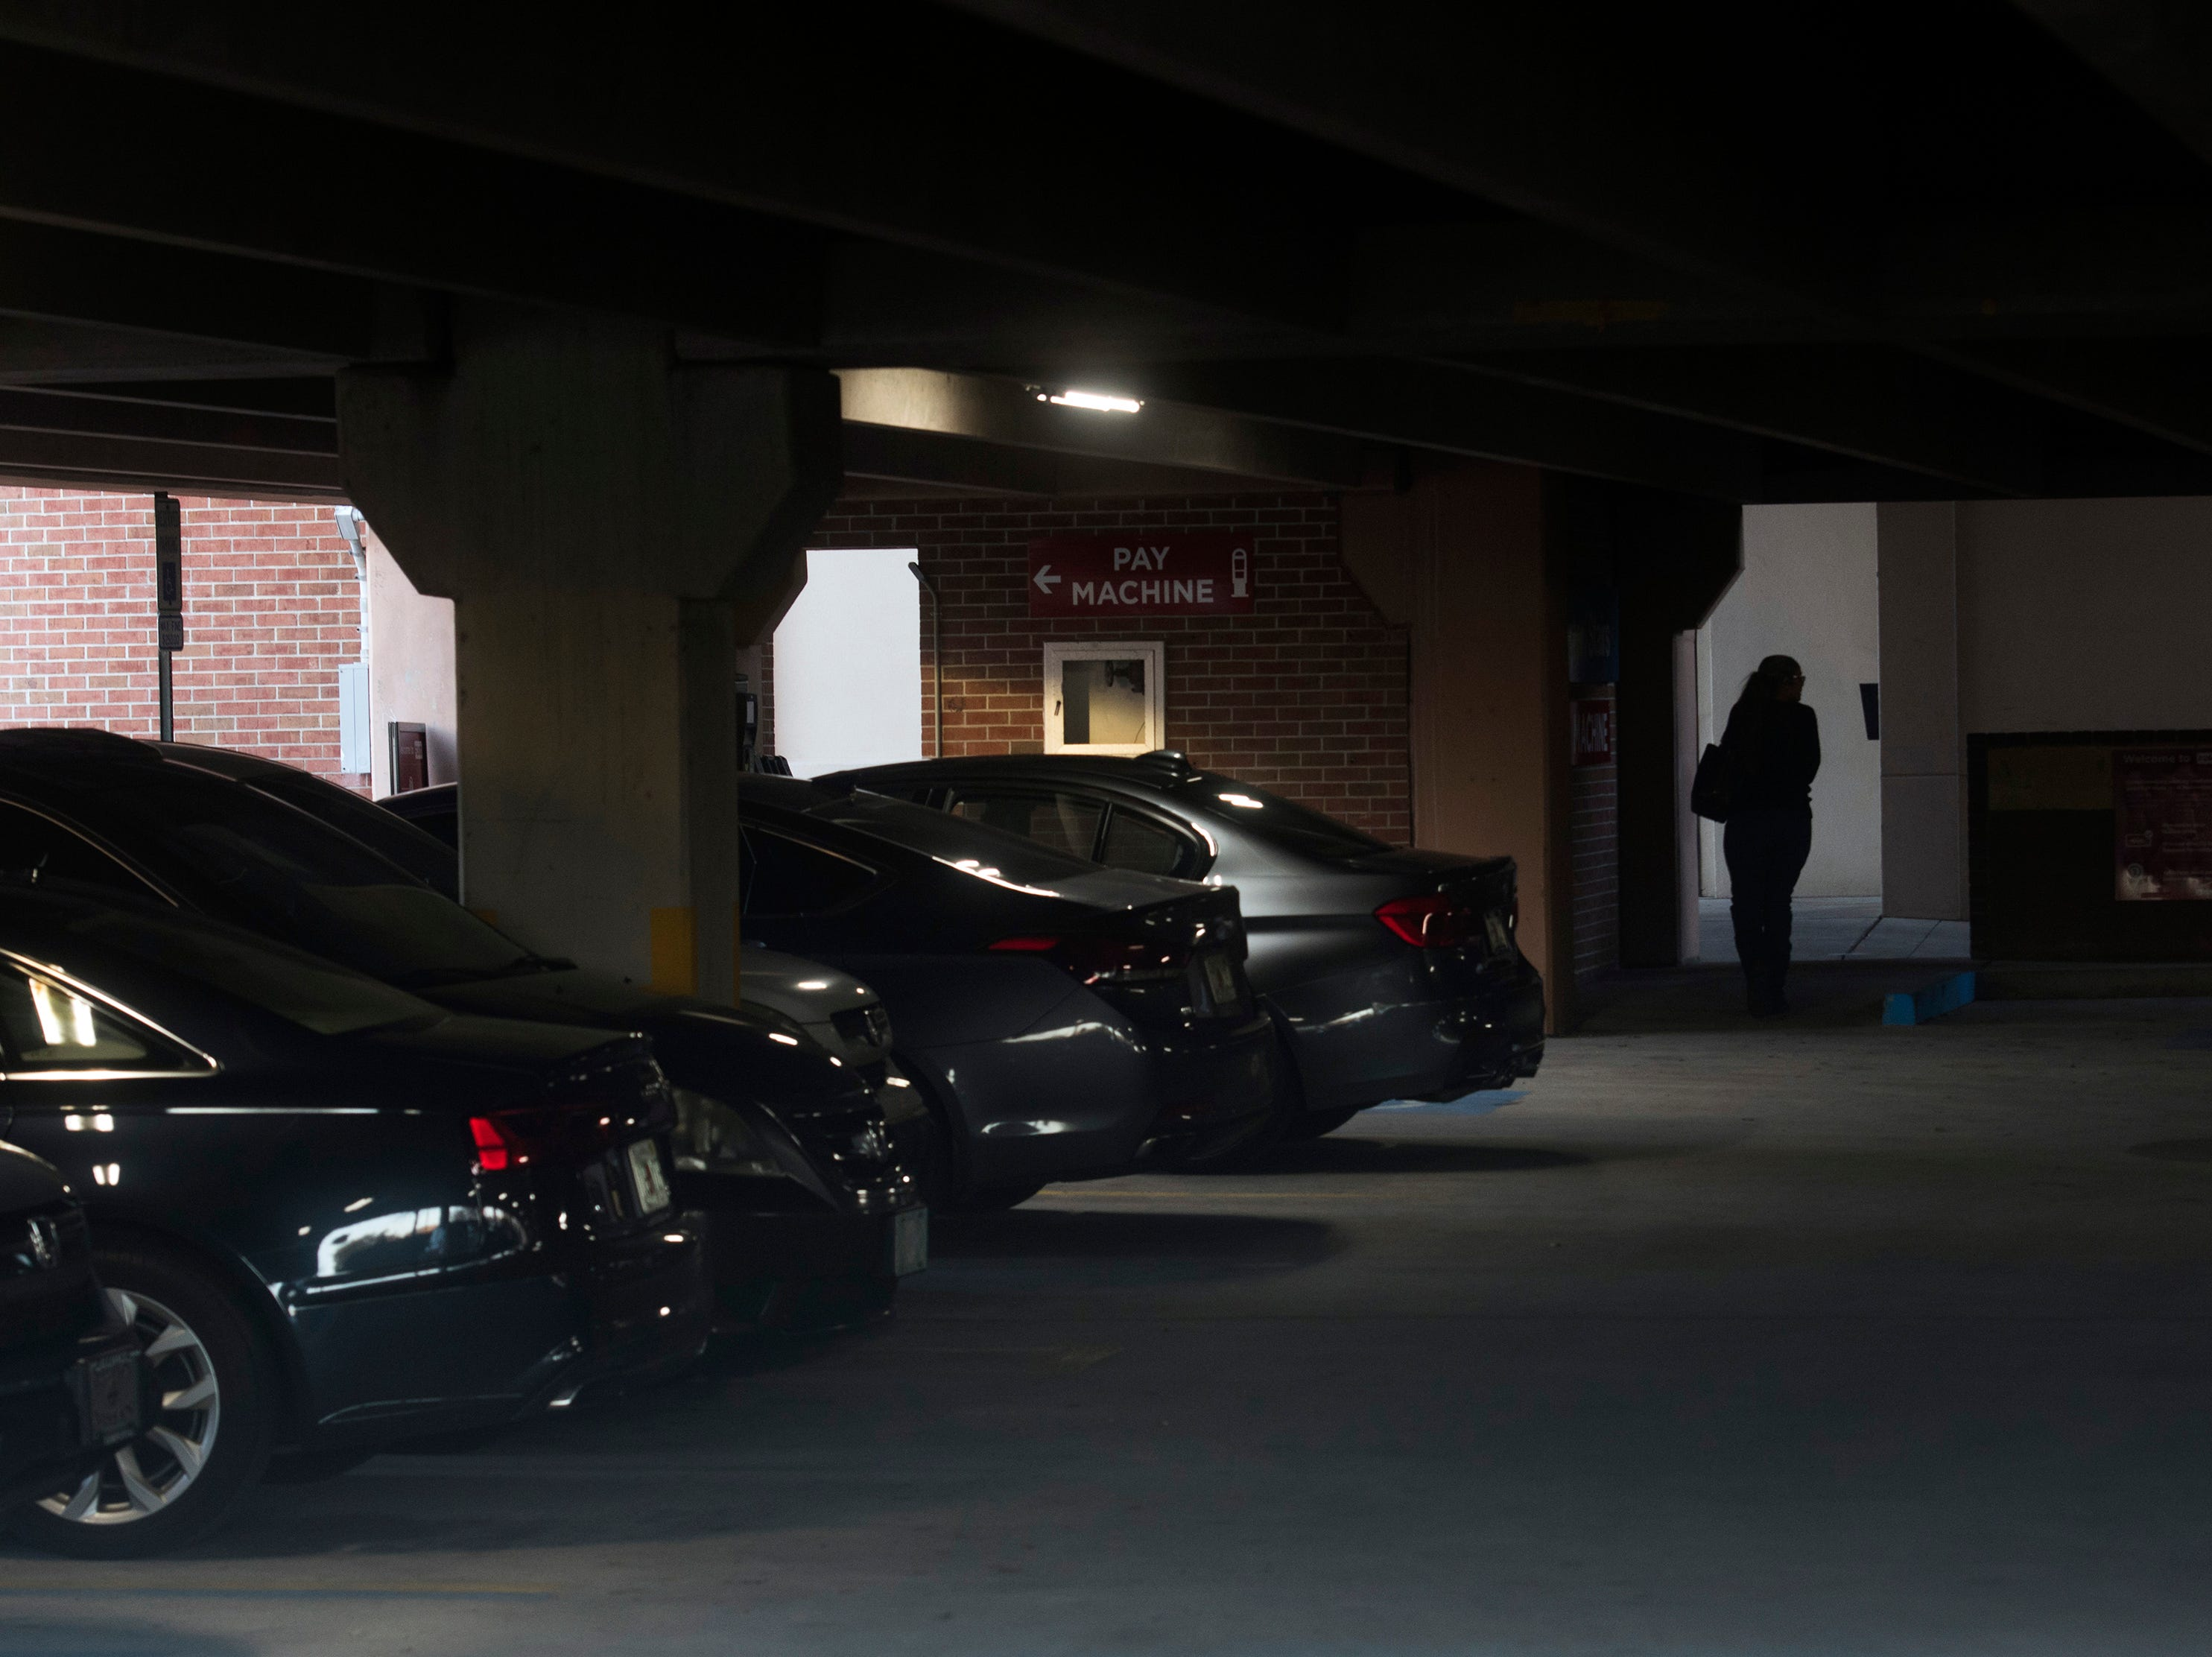 The Jefferson Street garage is an accessible and convenient parking facility in downtown Pensacola, but concerns over user safety are mounting on Monday, Jan. 4, 2019, after recent criminal activity.